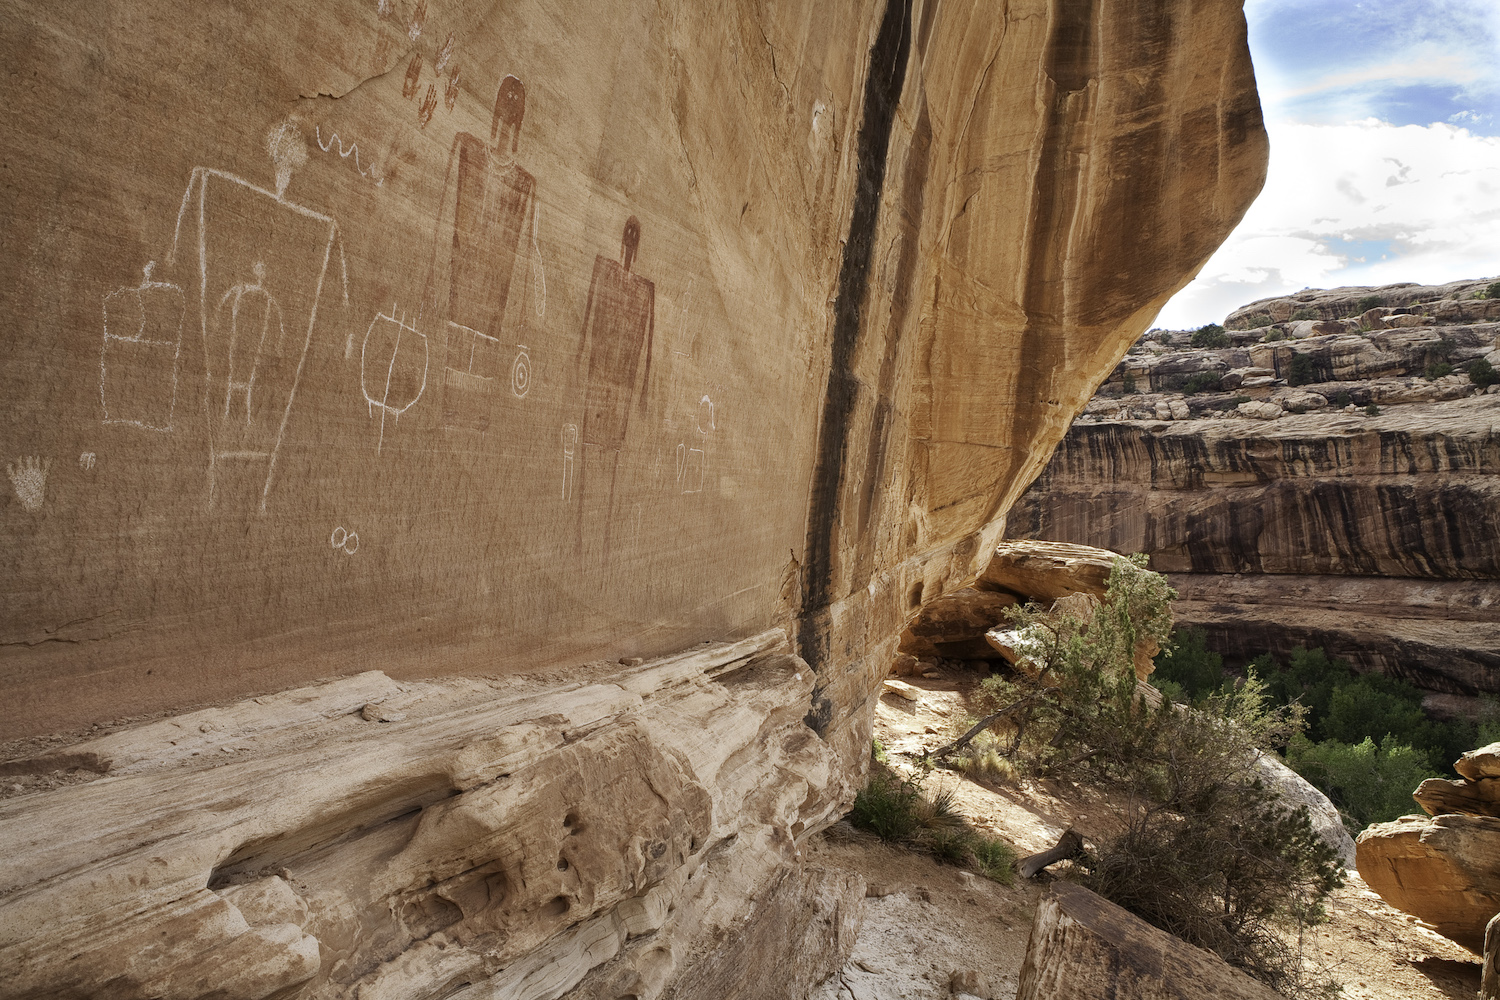 Jacqueline Keeler: New monument marks victory for tribal sites